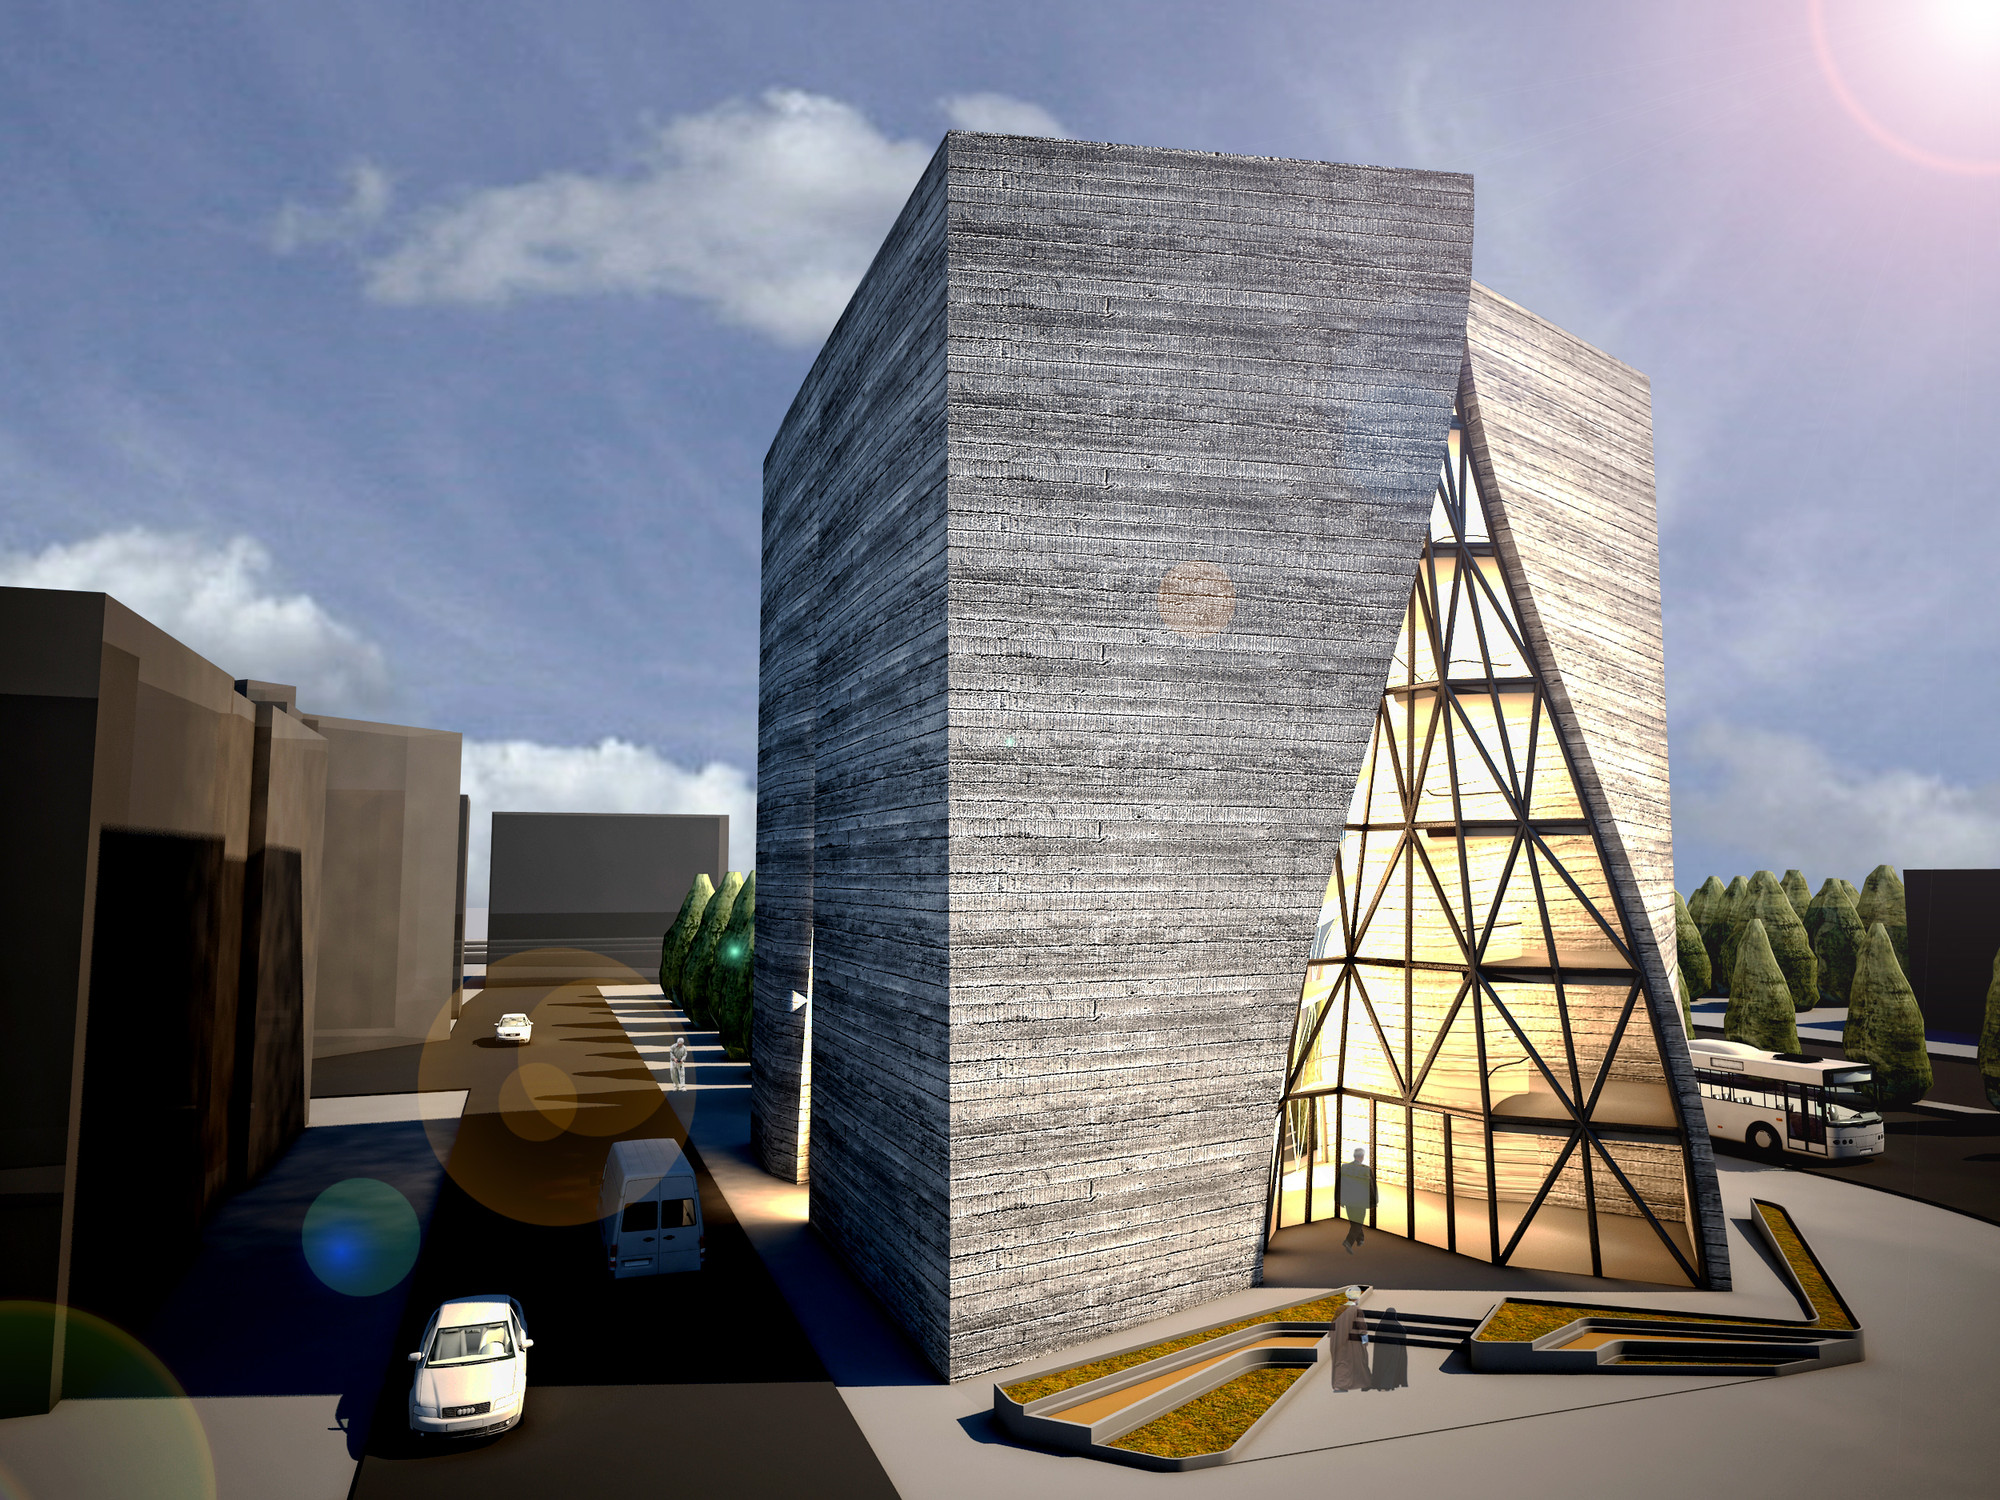 architecture building construction organization engineering studio central qom archdaily